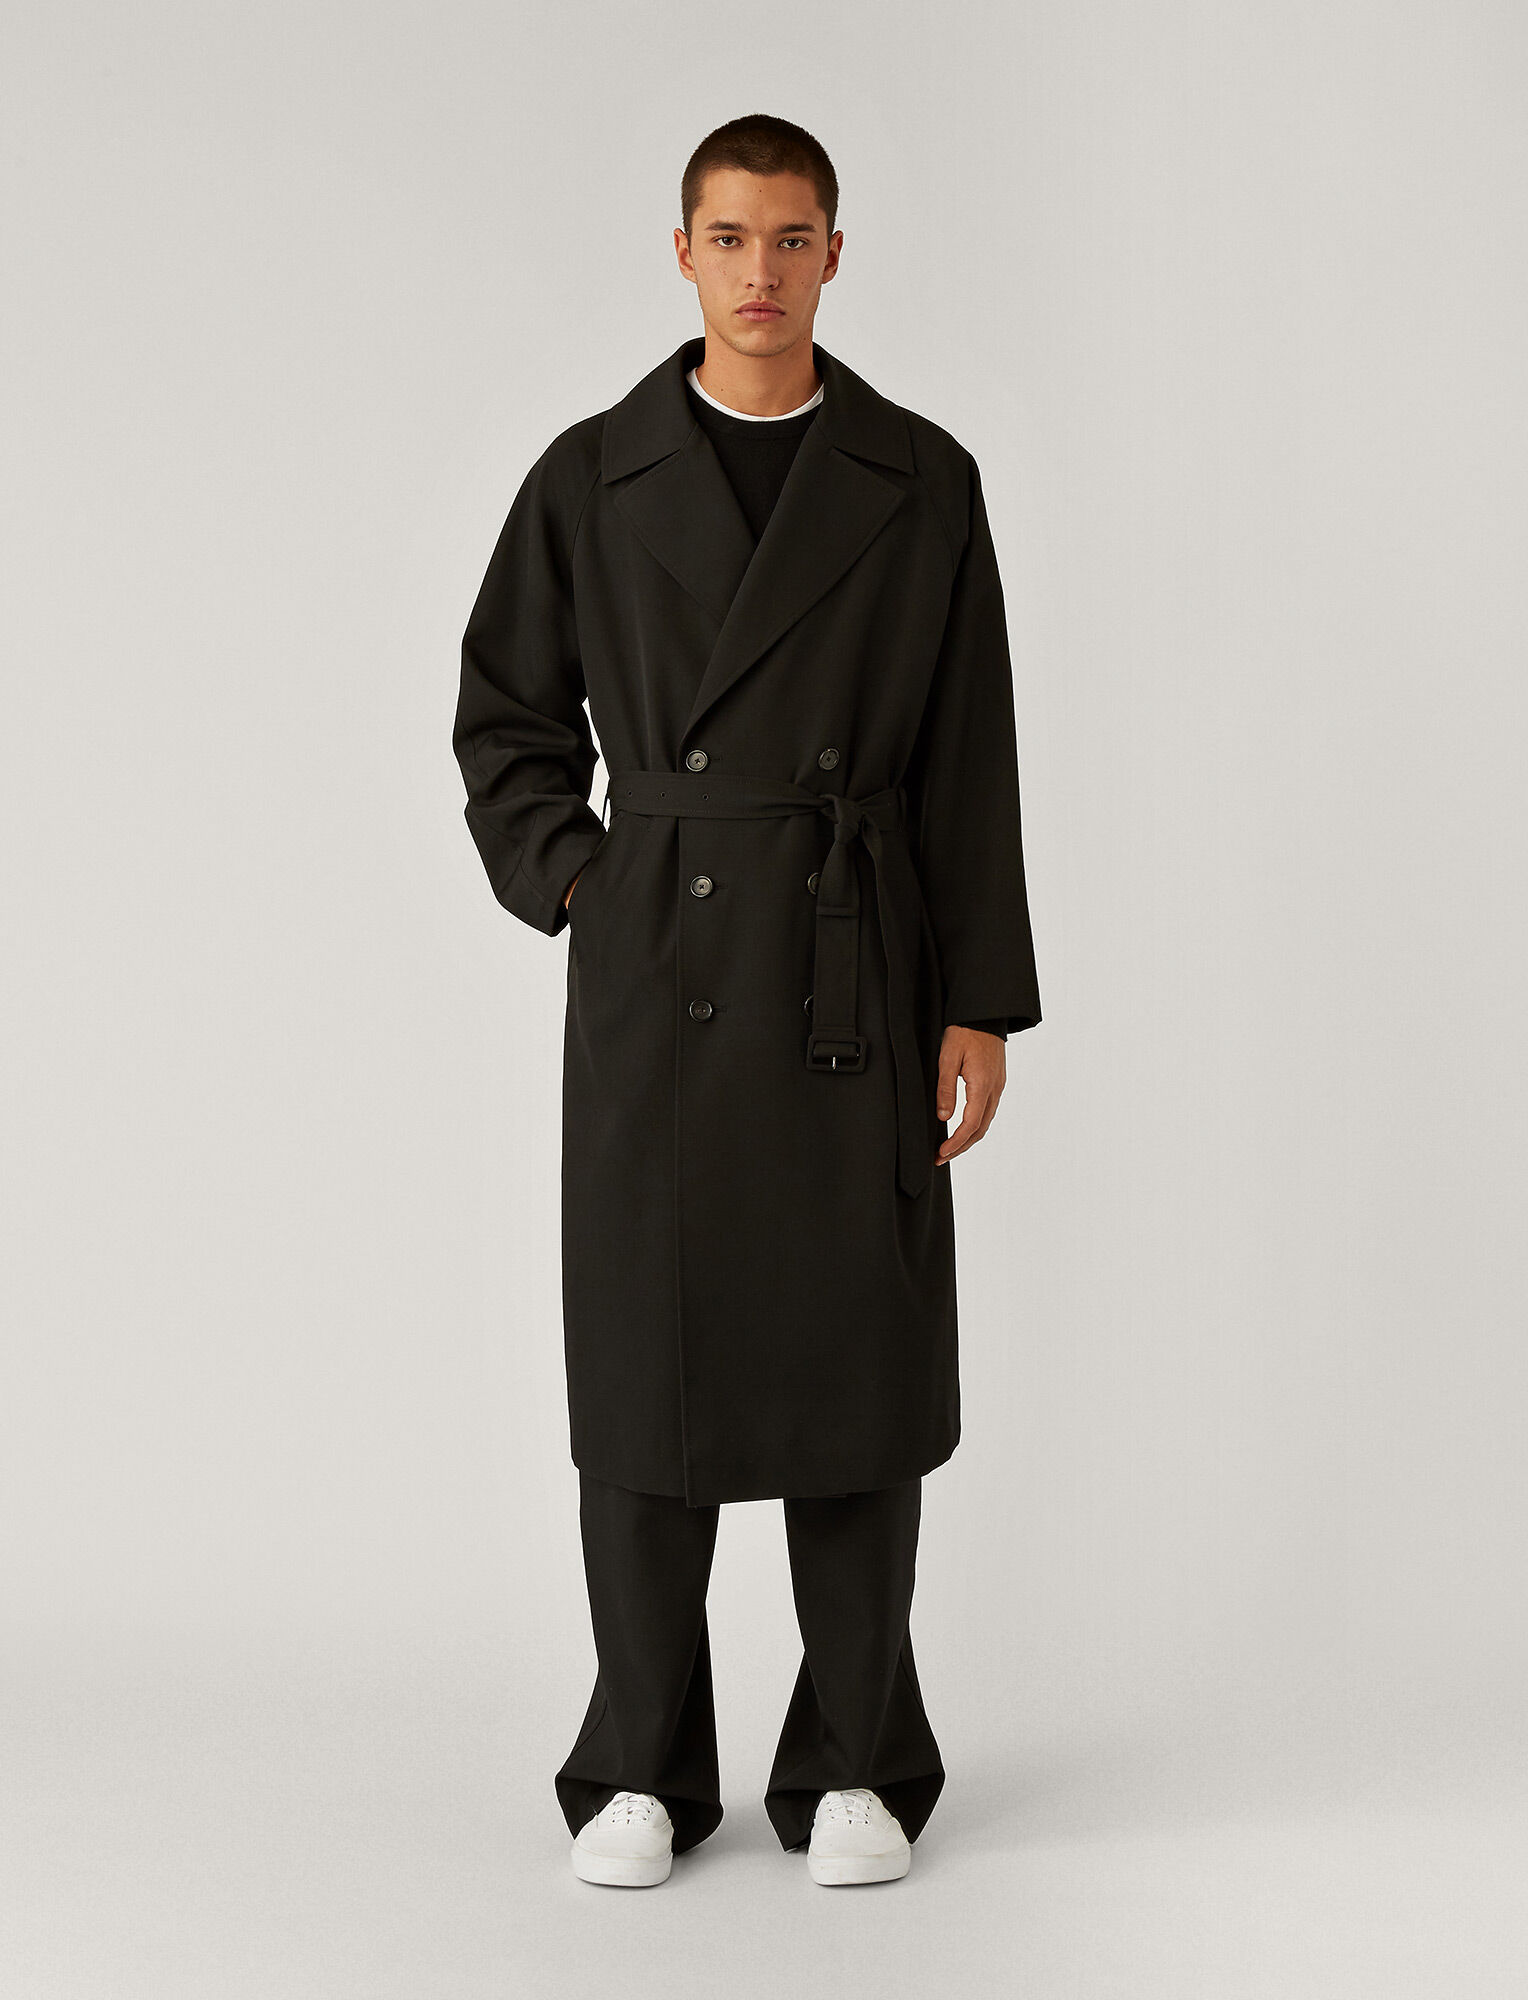 Joseph, Japanese Wool Coat, in Black